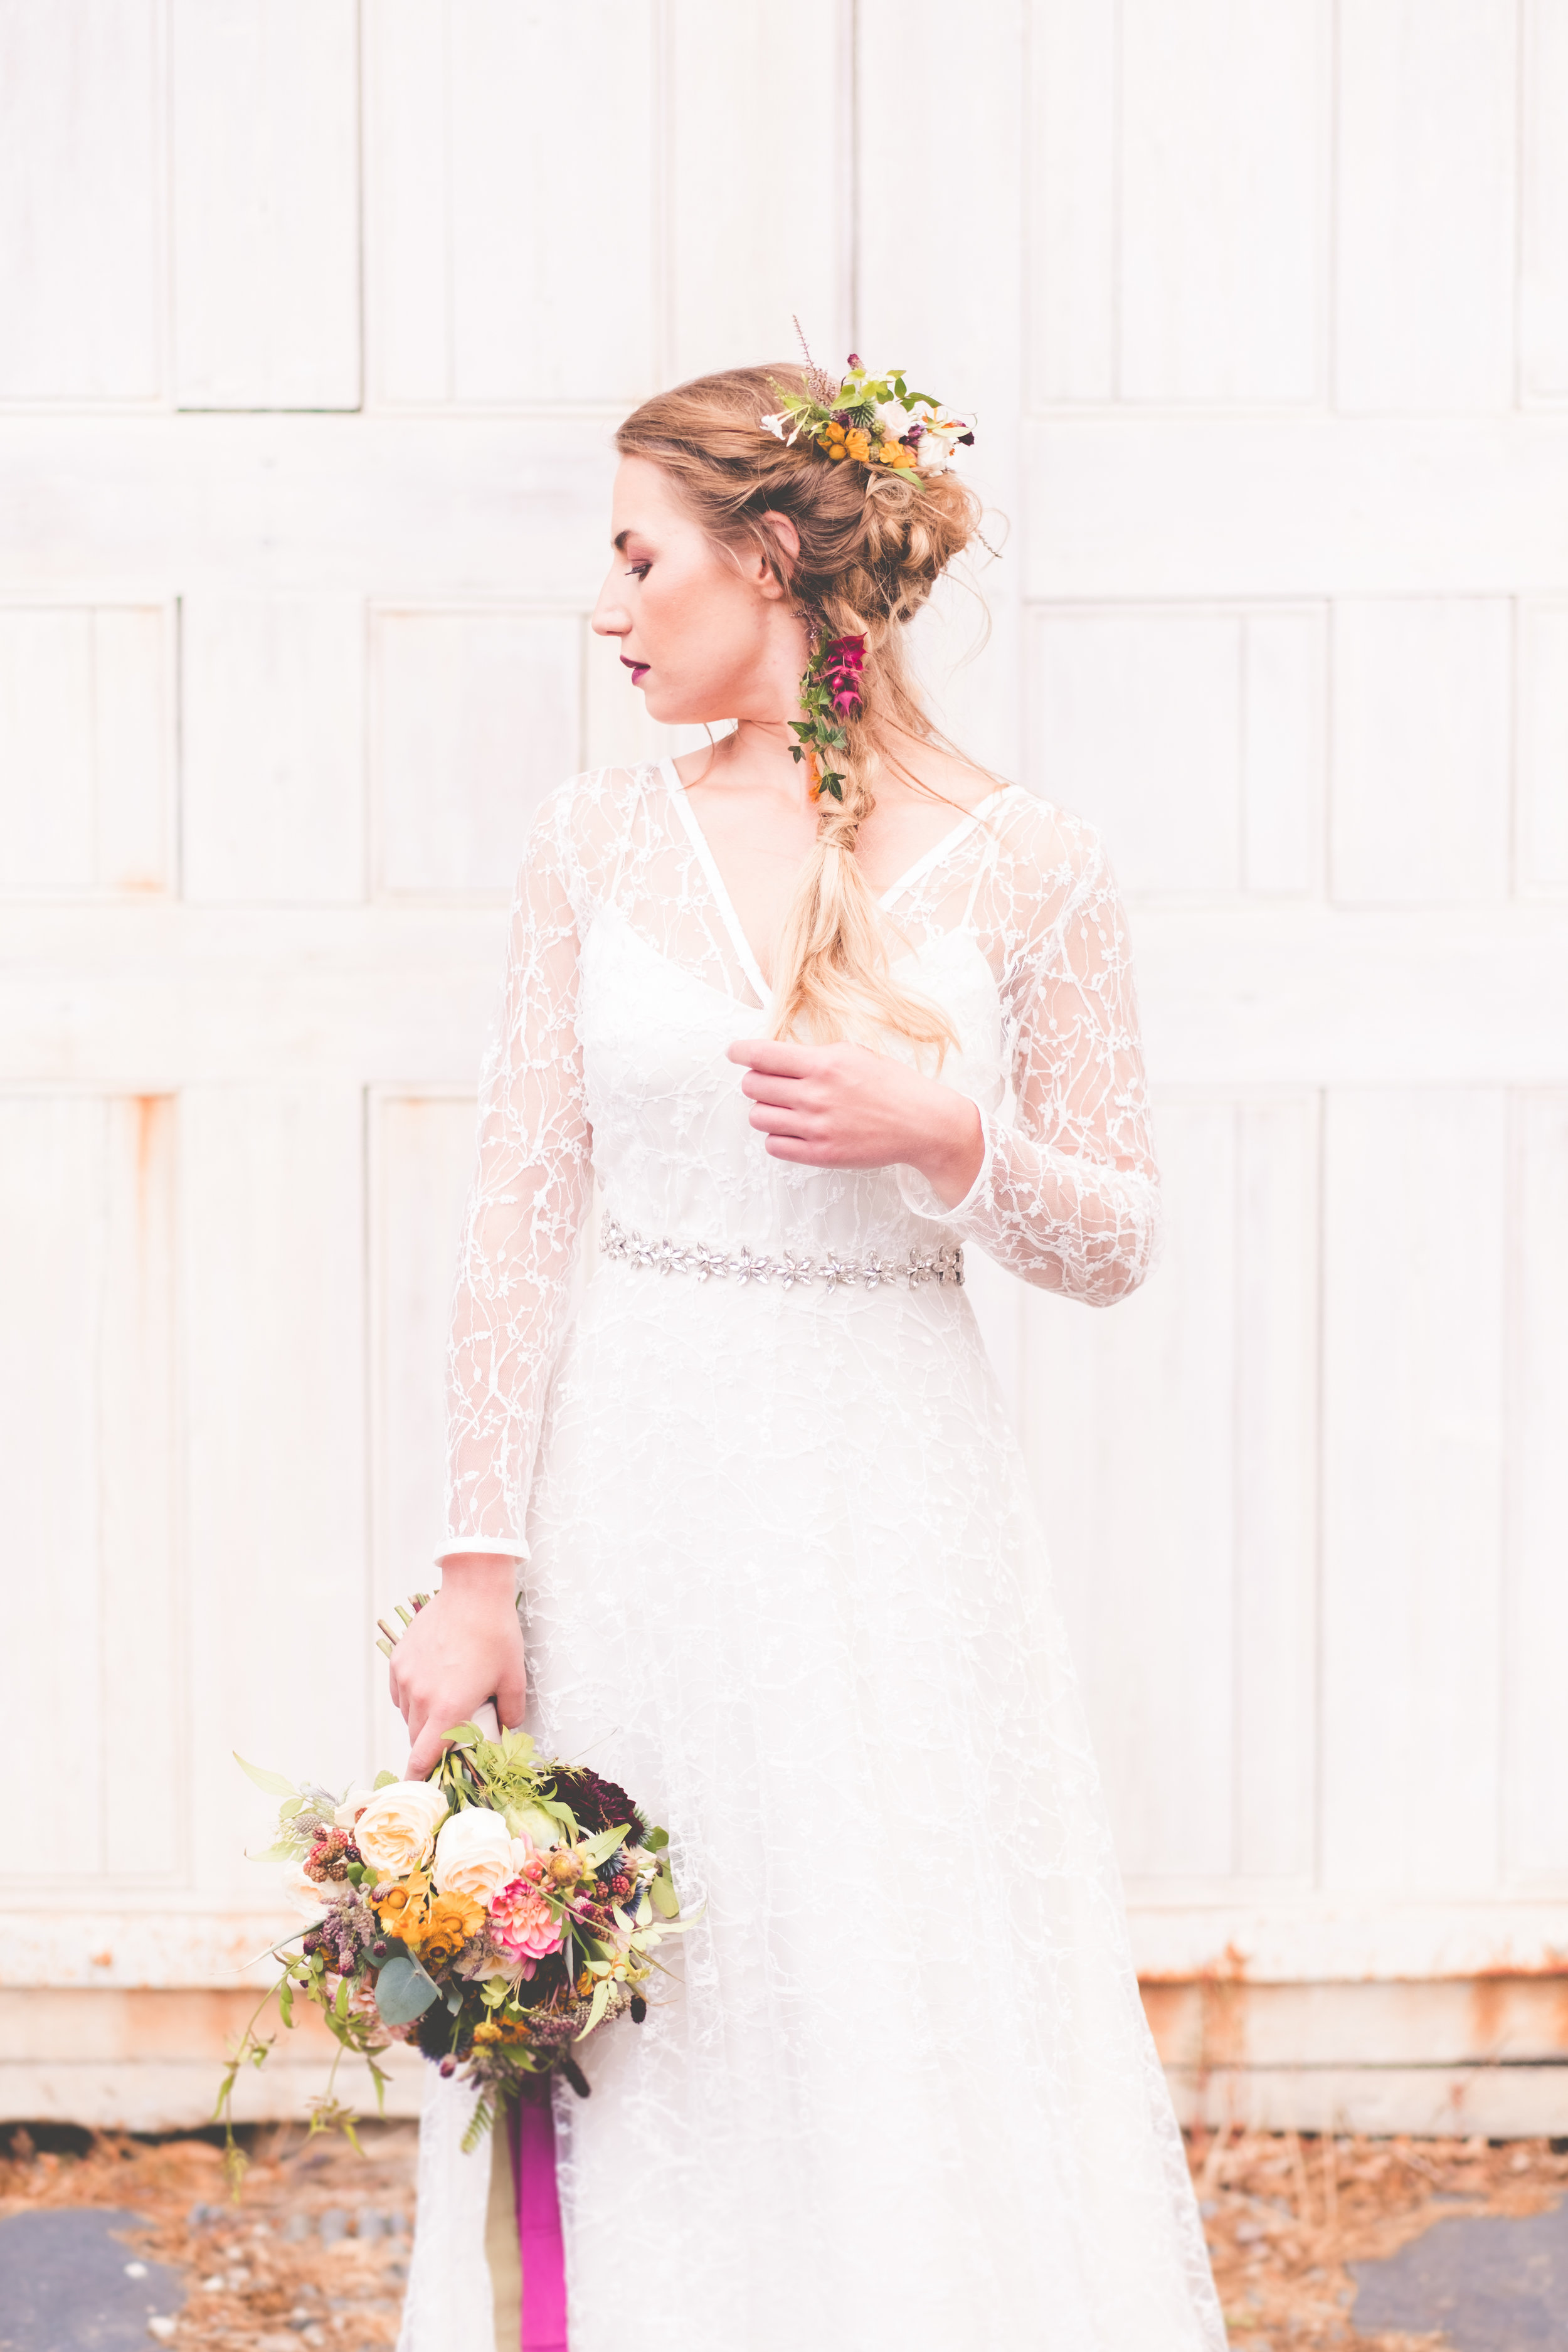 Nanteo's Styled Shoot - Images by Jon Turtle - Photographer-130.jpg